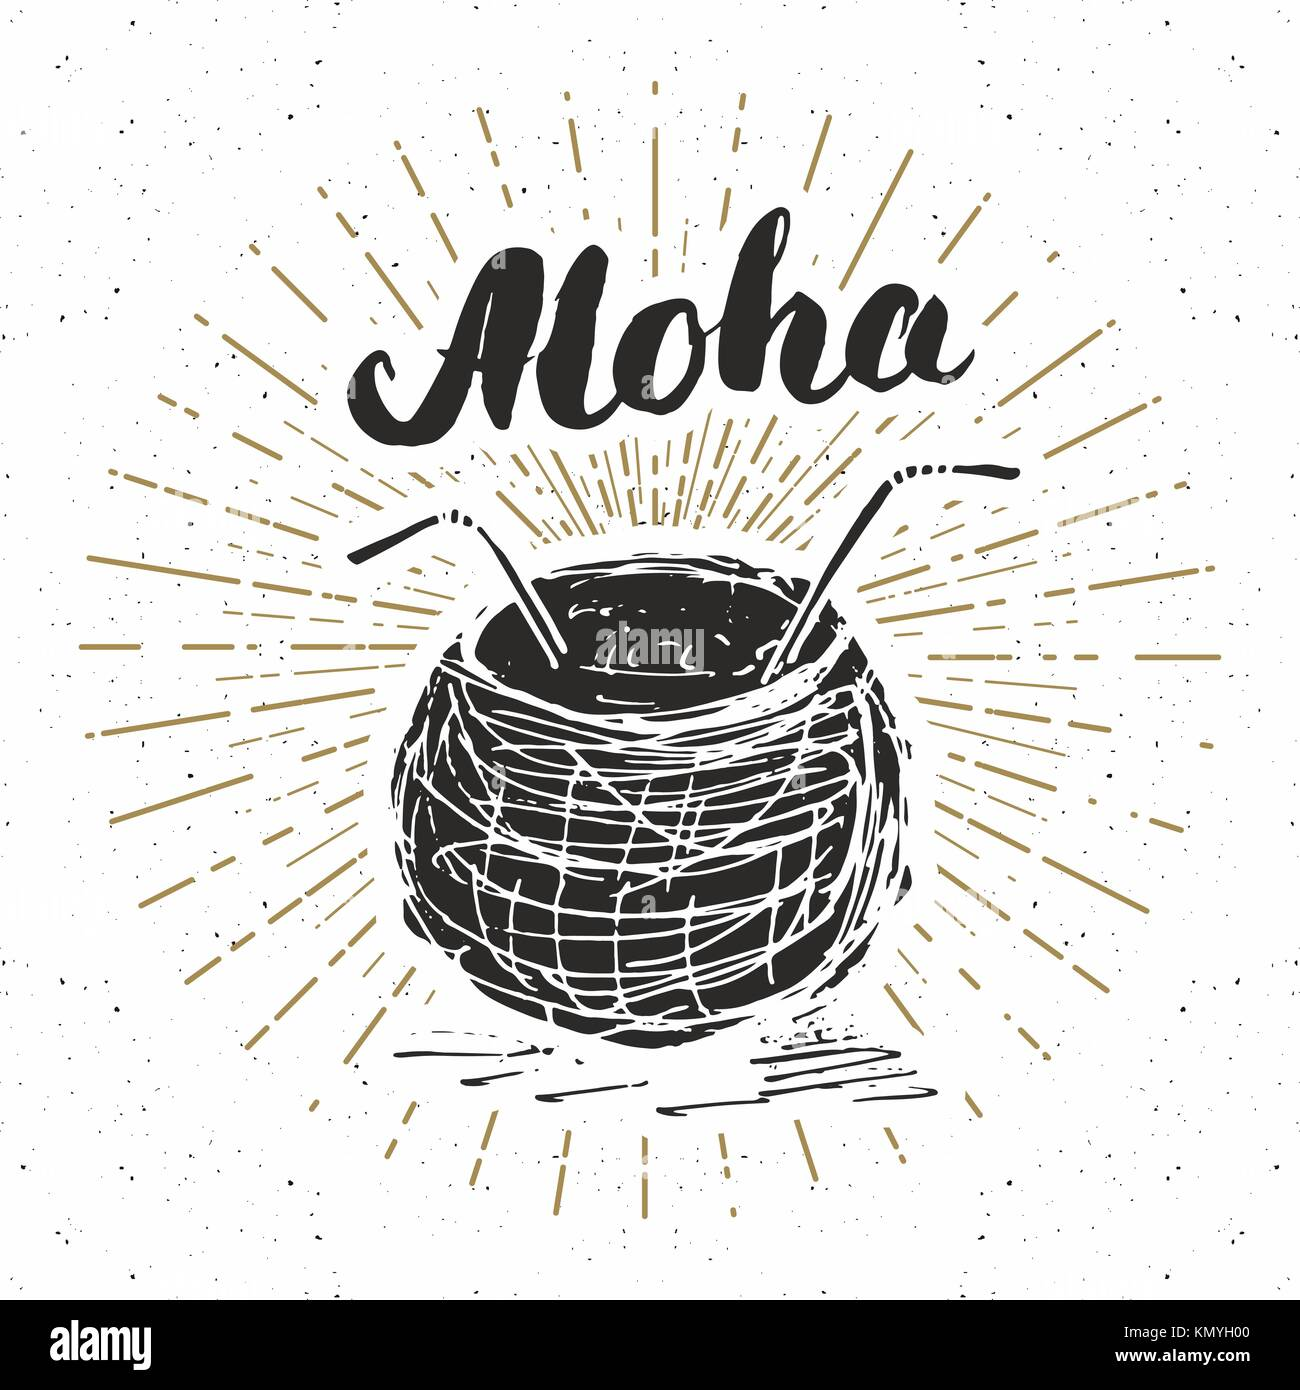 vintage label hand drawn coconut with lettering aloha grunge stock